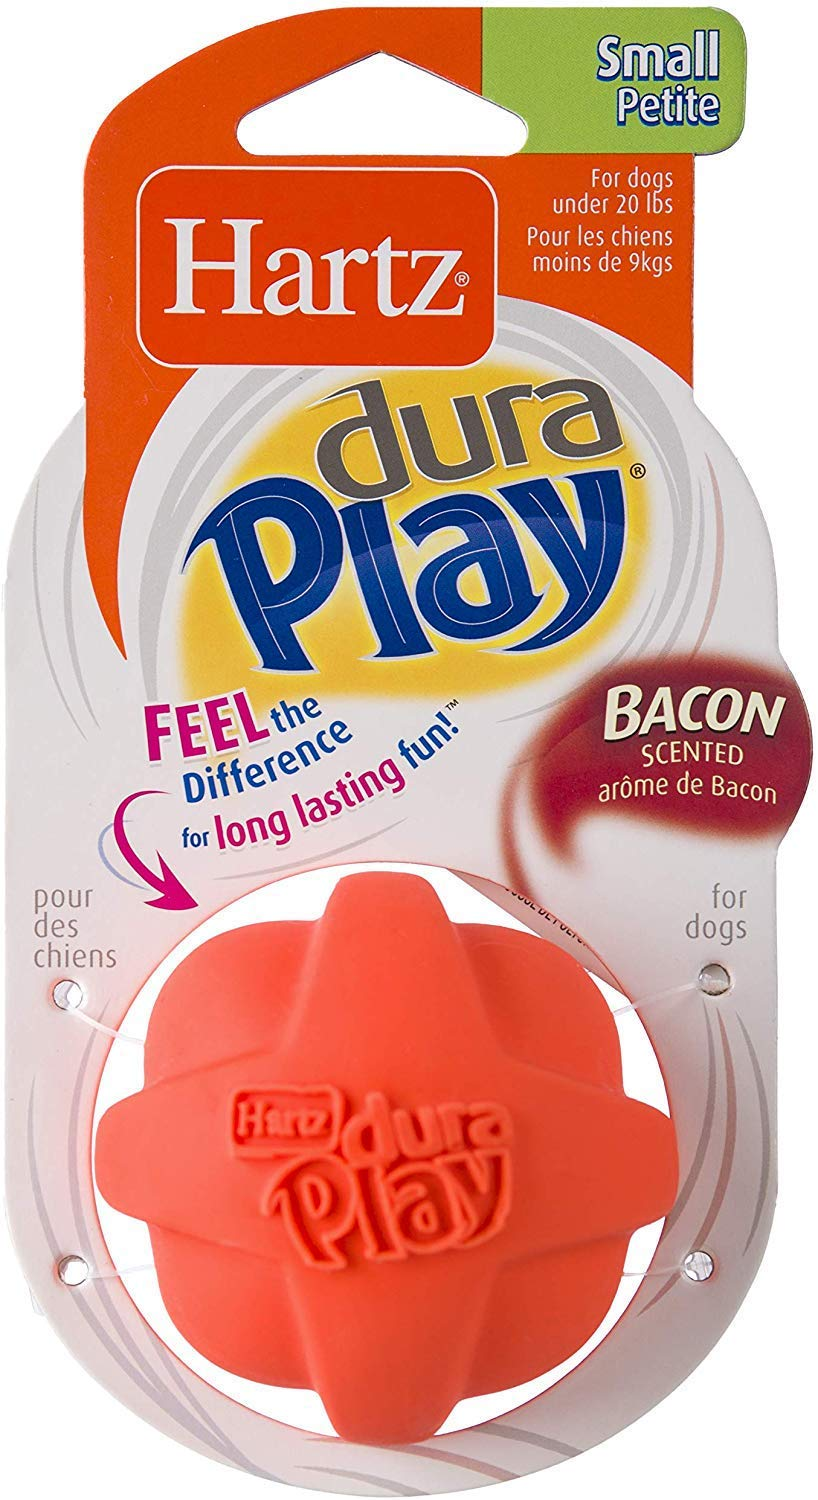 Hartz Dura Play Ball Size:Small Pack of 2